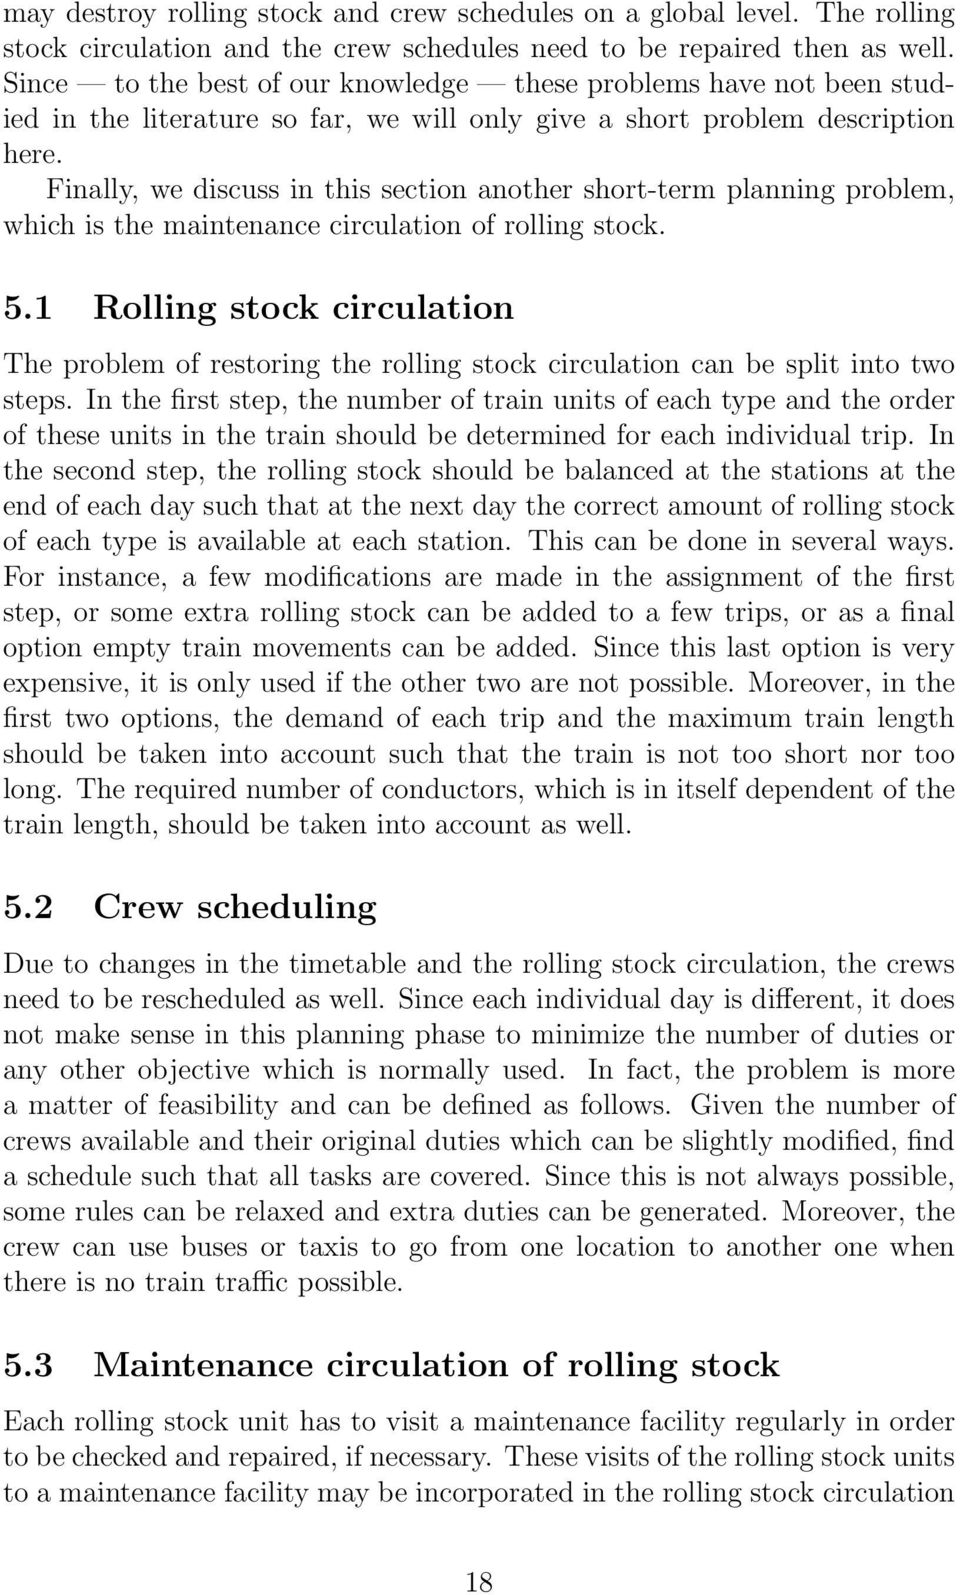 Finally, we discuss in this section another short-term planning problem, which is the maintenance circulation of rolling stock. 5.